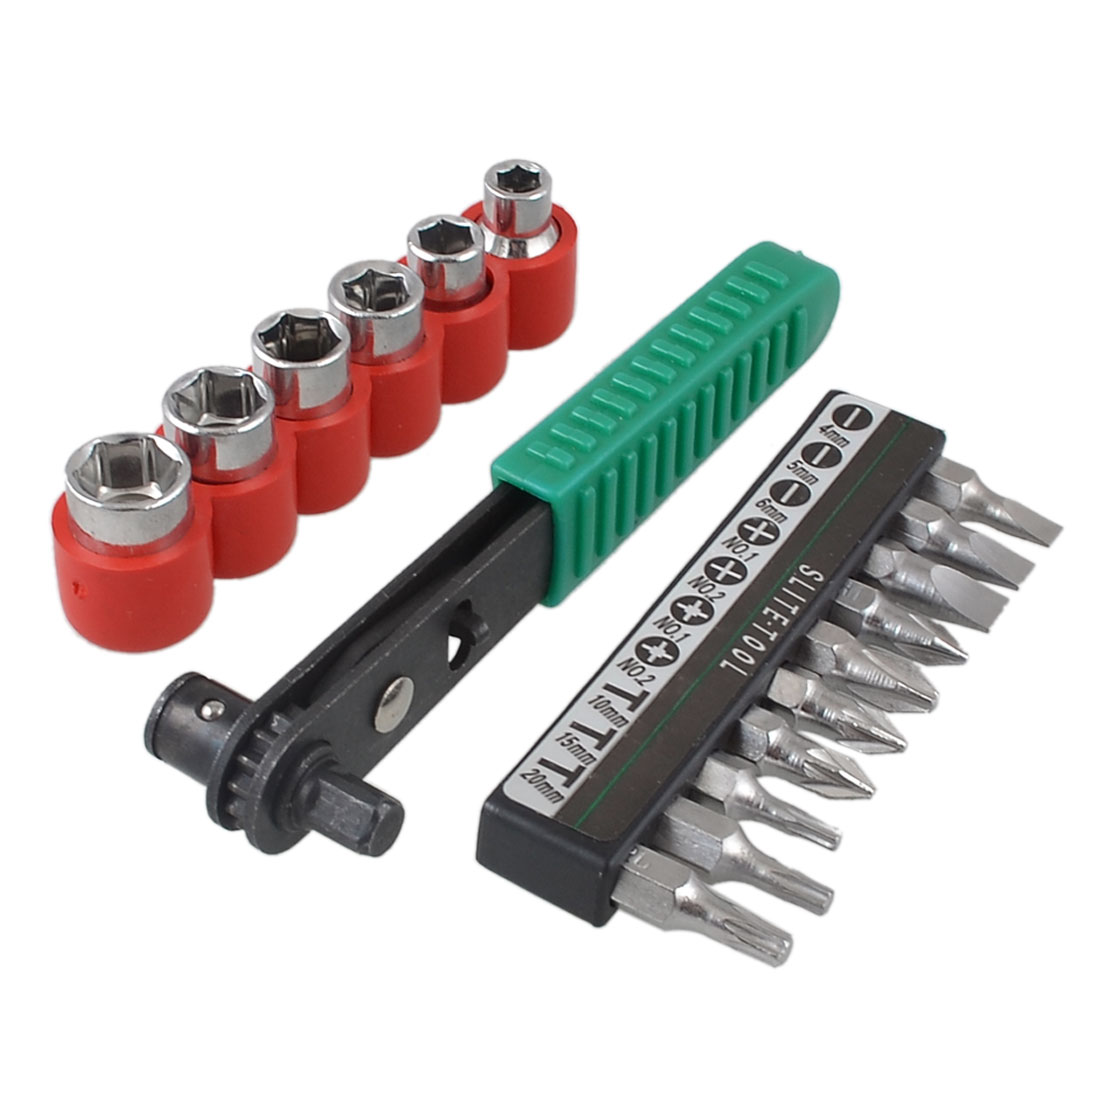 Double End Offset Ratchet Screwdriver Bit Socket Set Tool